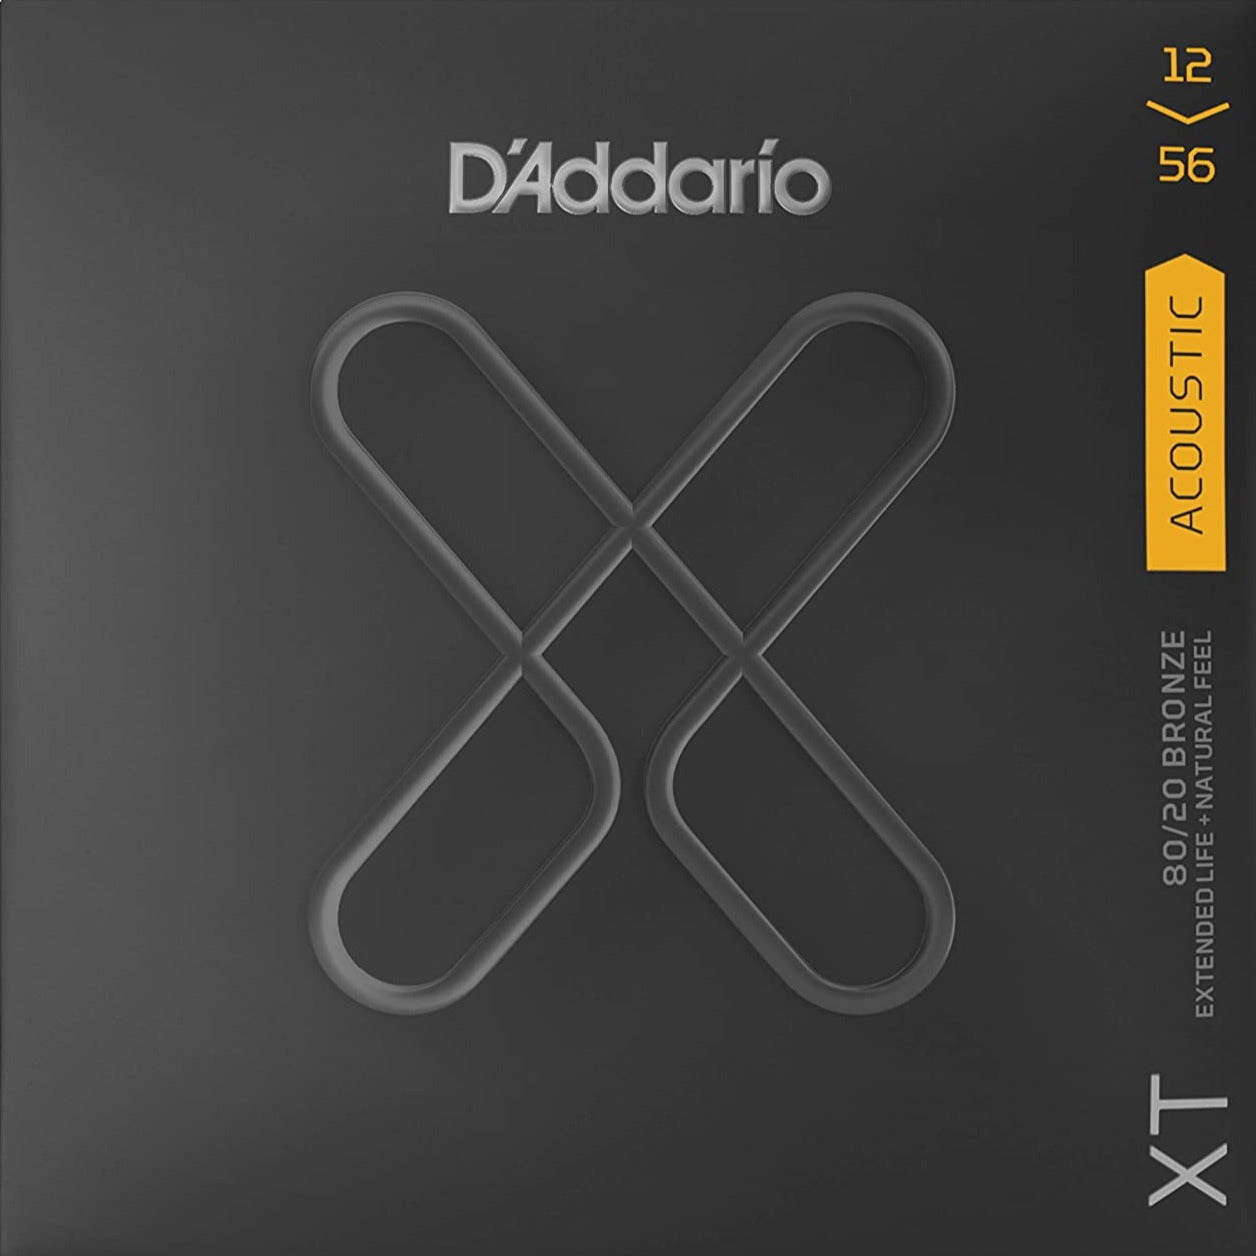 D'Addario XT Acoustic 80/20 Bronze - Custom Light - 12-56